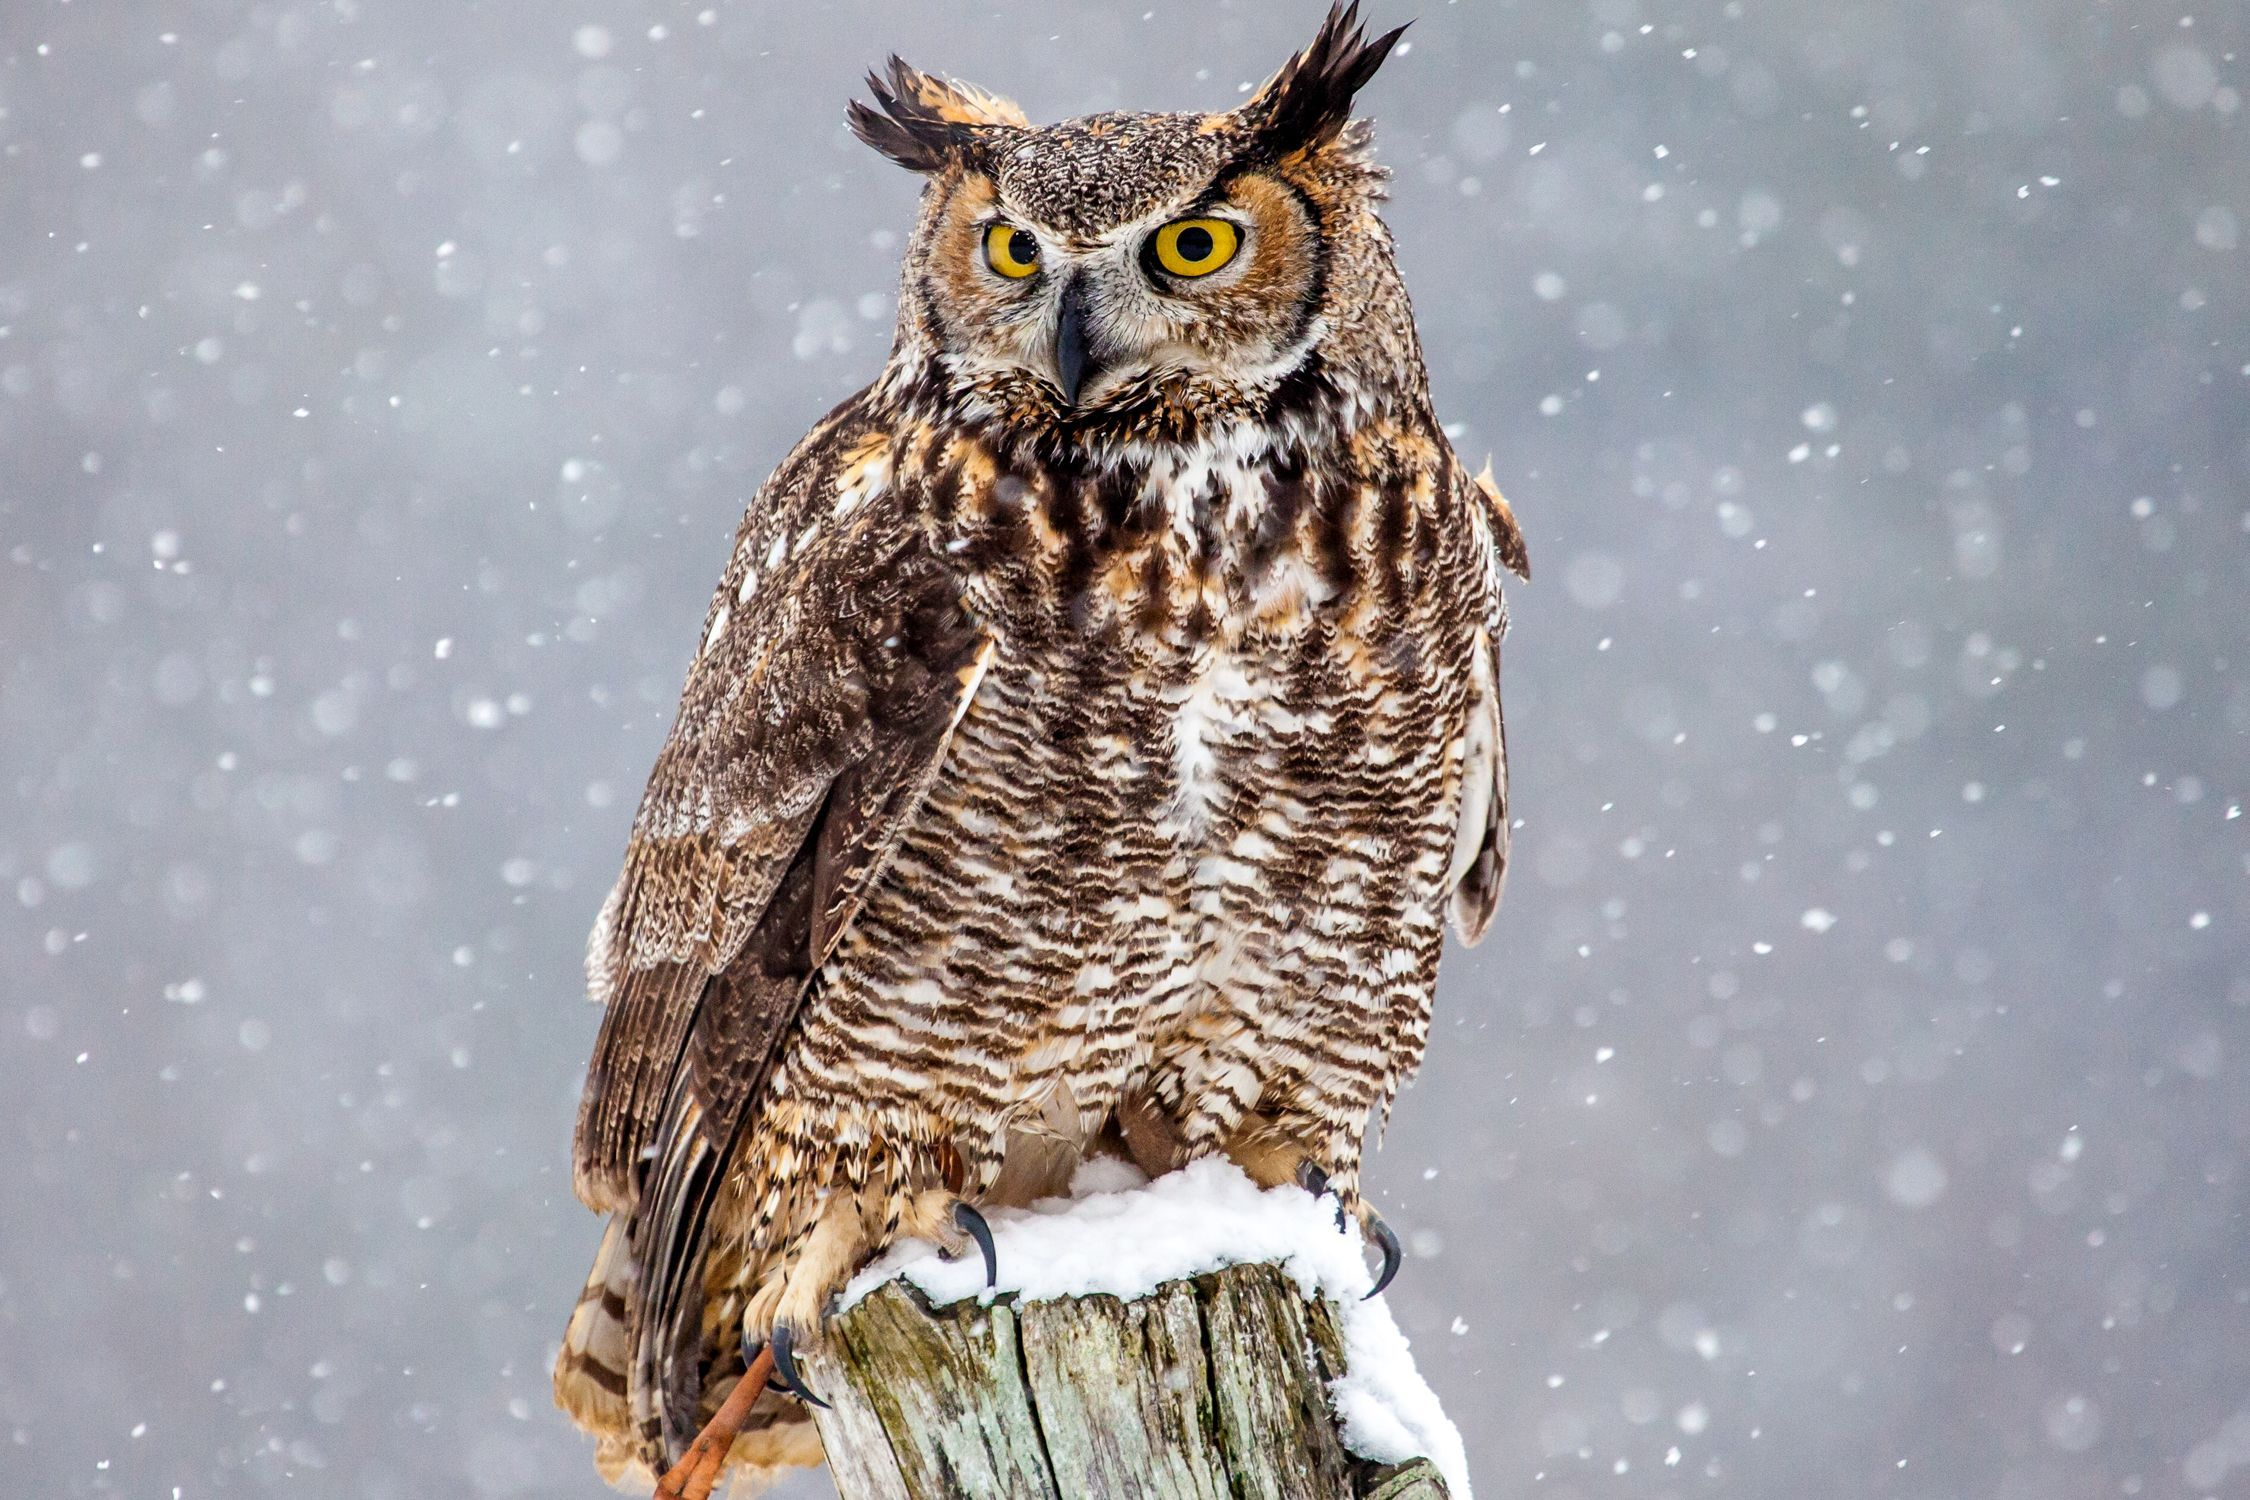 HQ Great Horned Owl Wallpapers | File 508.65Kb